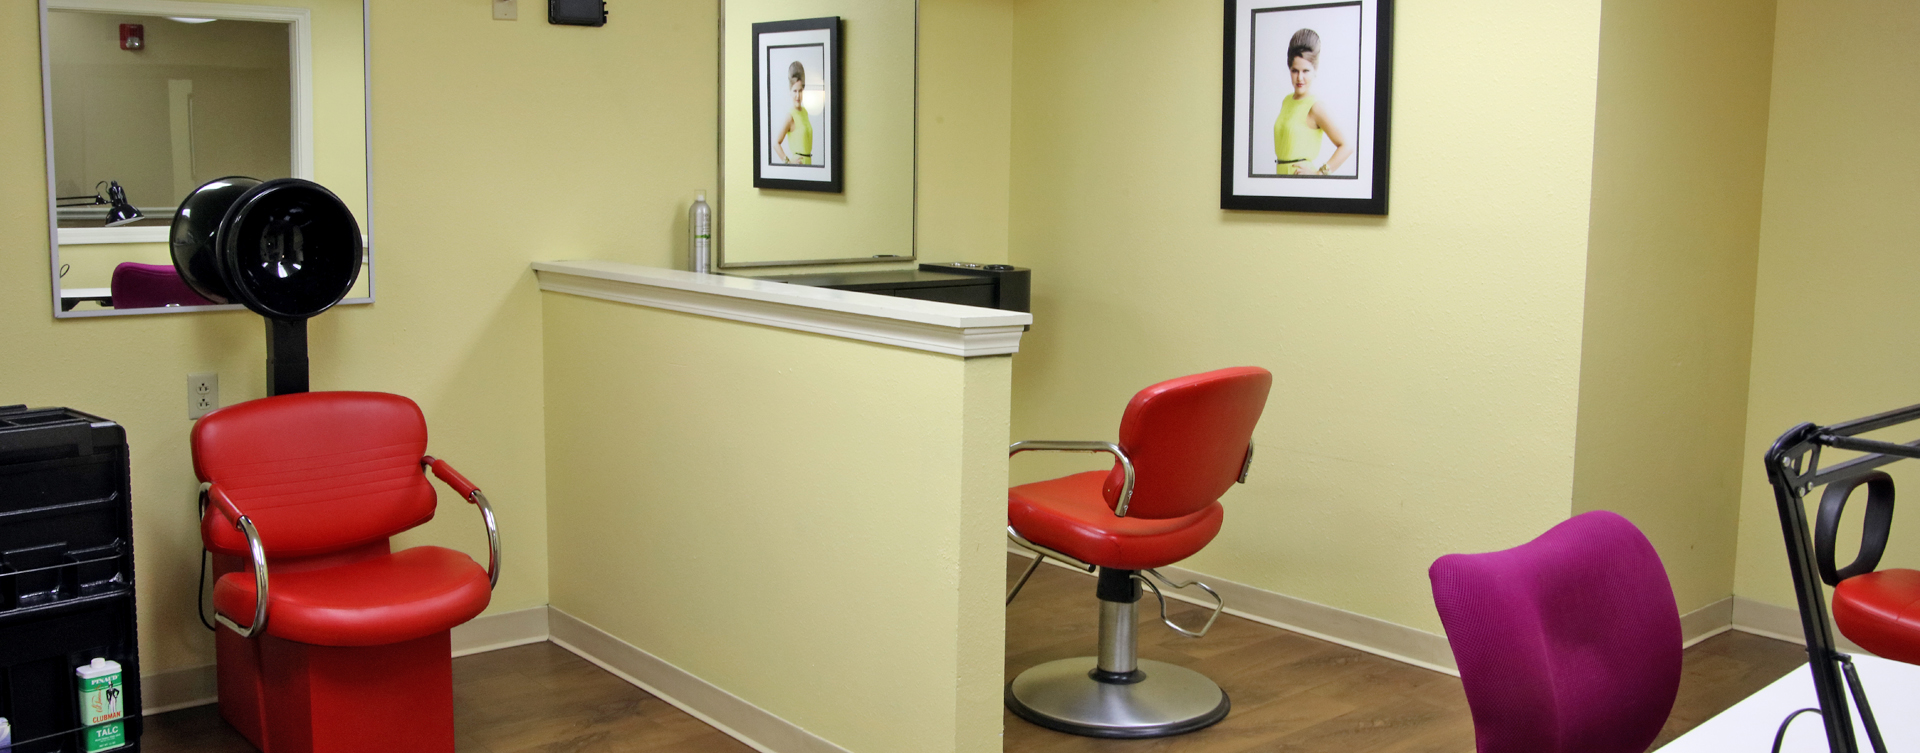 Receive personalized, at-home treatment from our stylist in the salon at Bickford of Raytown